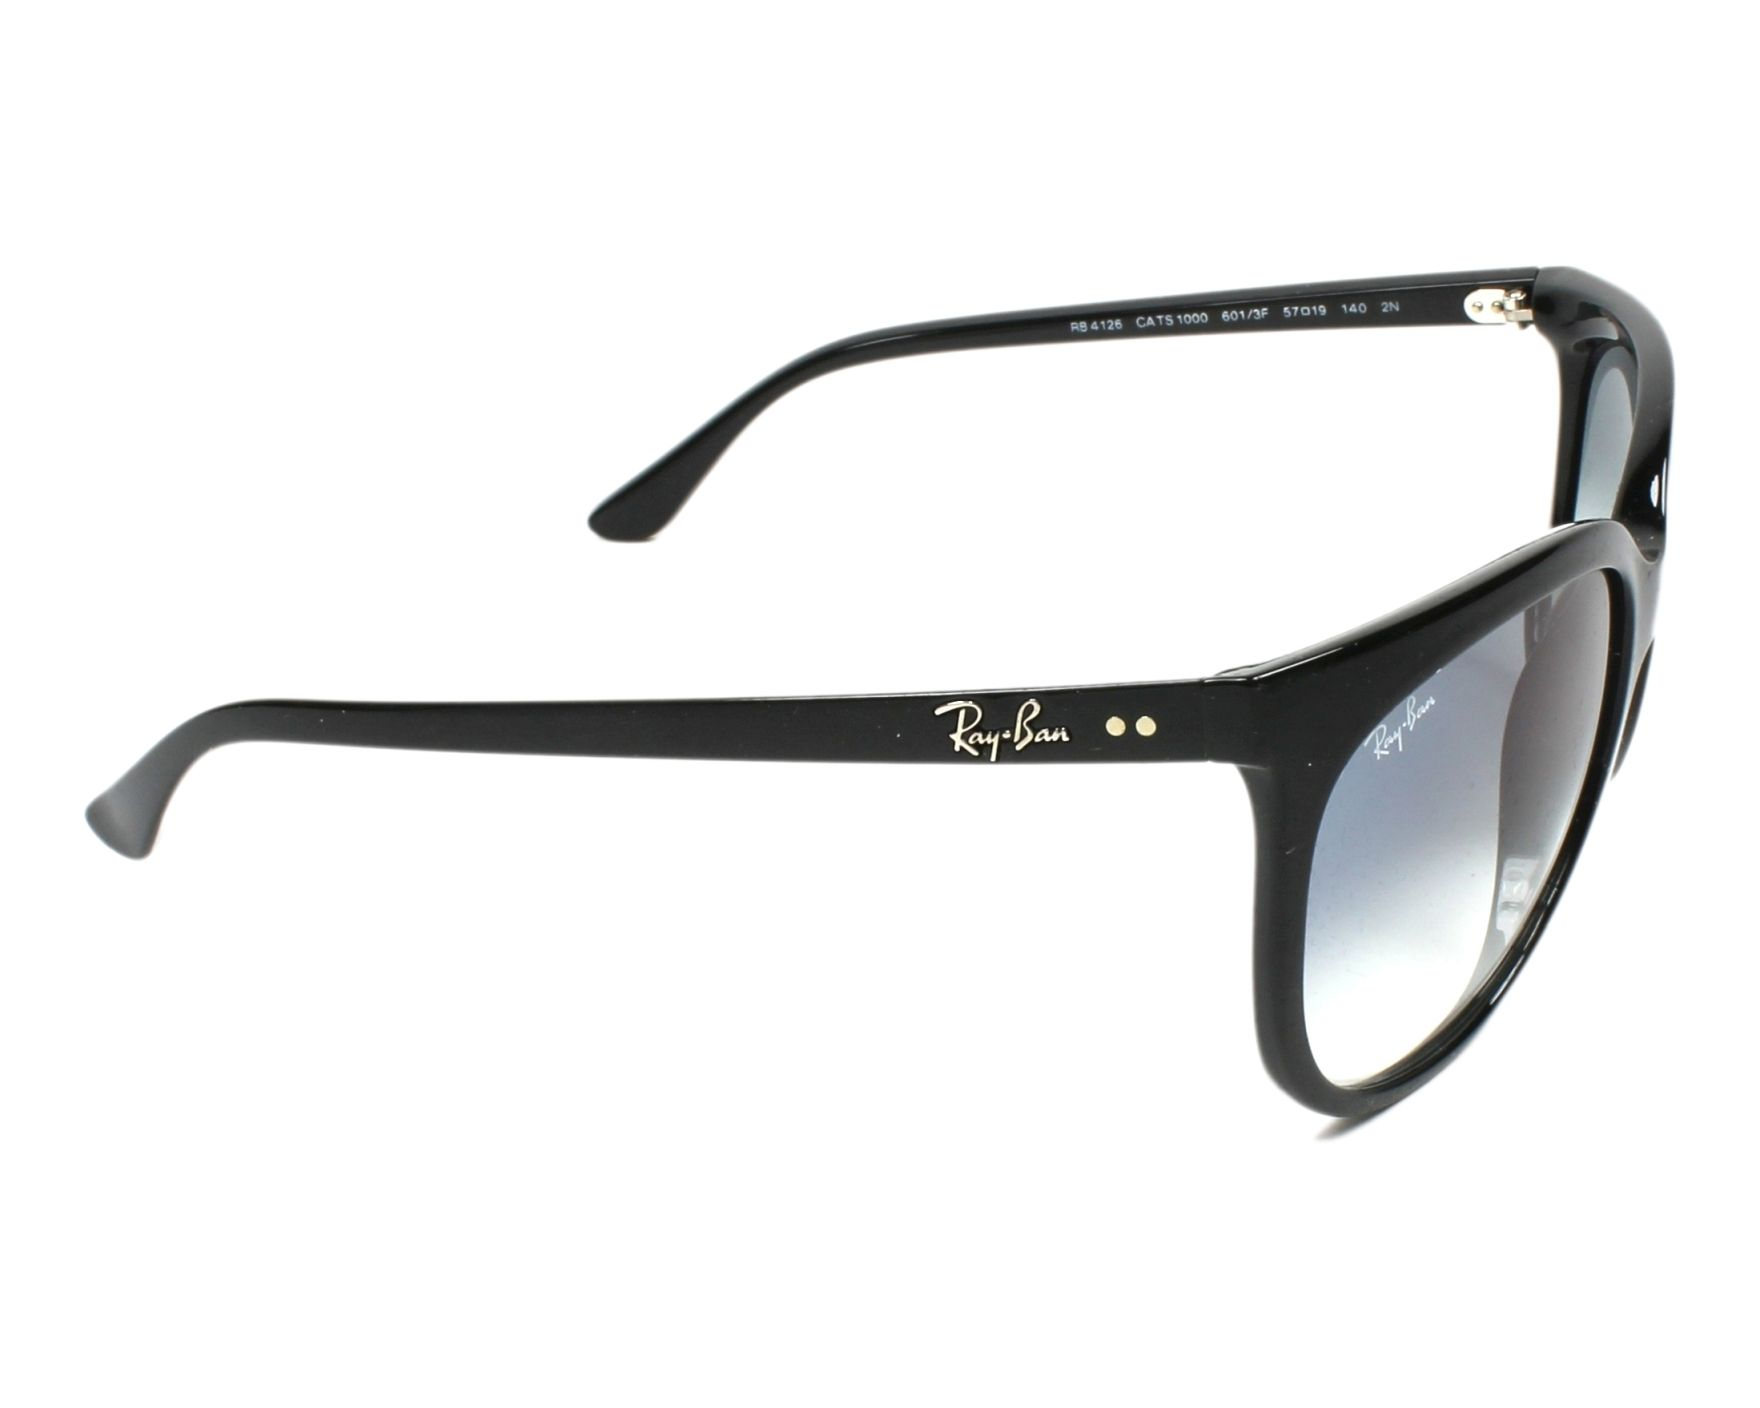 7ef7203a9e8d8 Ray-Ban 8625 1000 Eyeglasses -  134. Shop Online at EyewearDock!